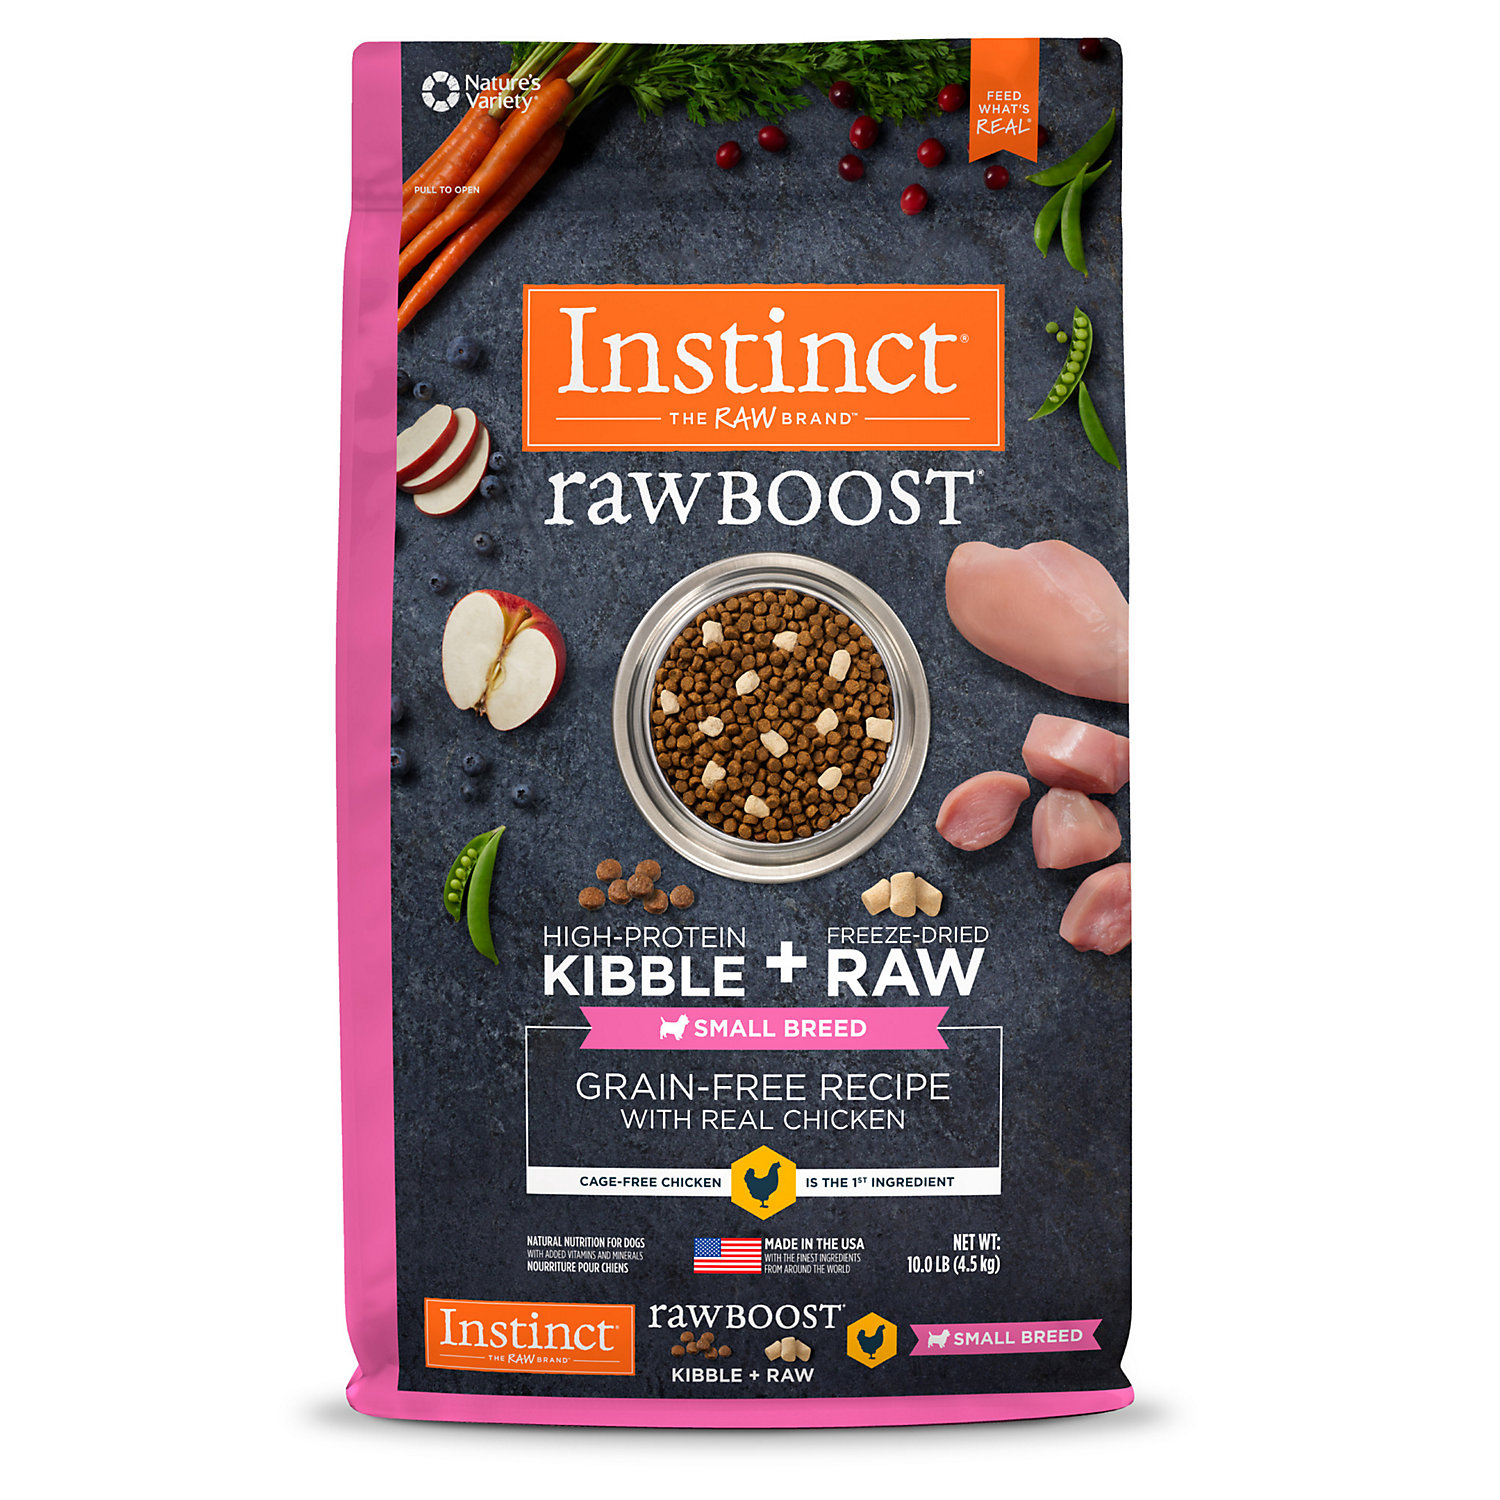 Instinct Raw Boost Small Breed Grain-Free Recipe with Real Chicken Natural Dry Dog Food by Nature's Variety